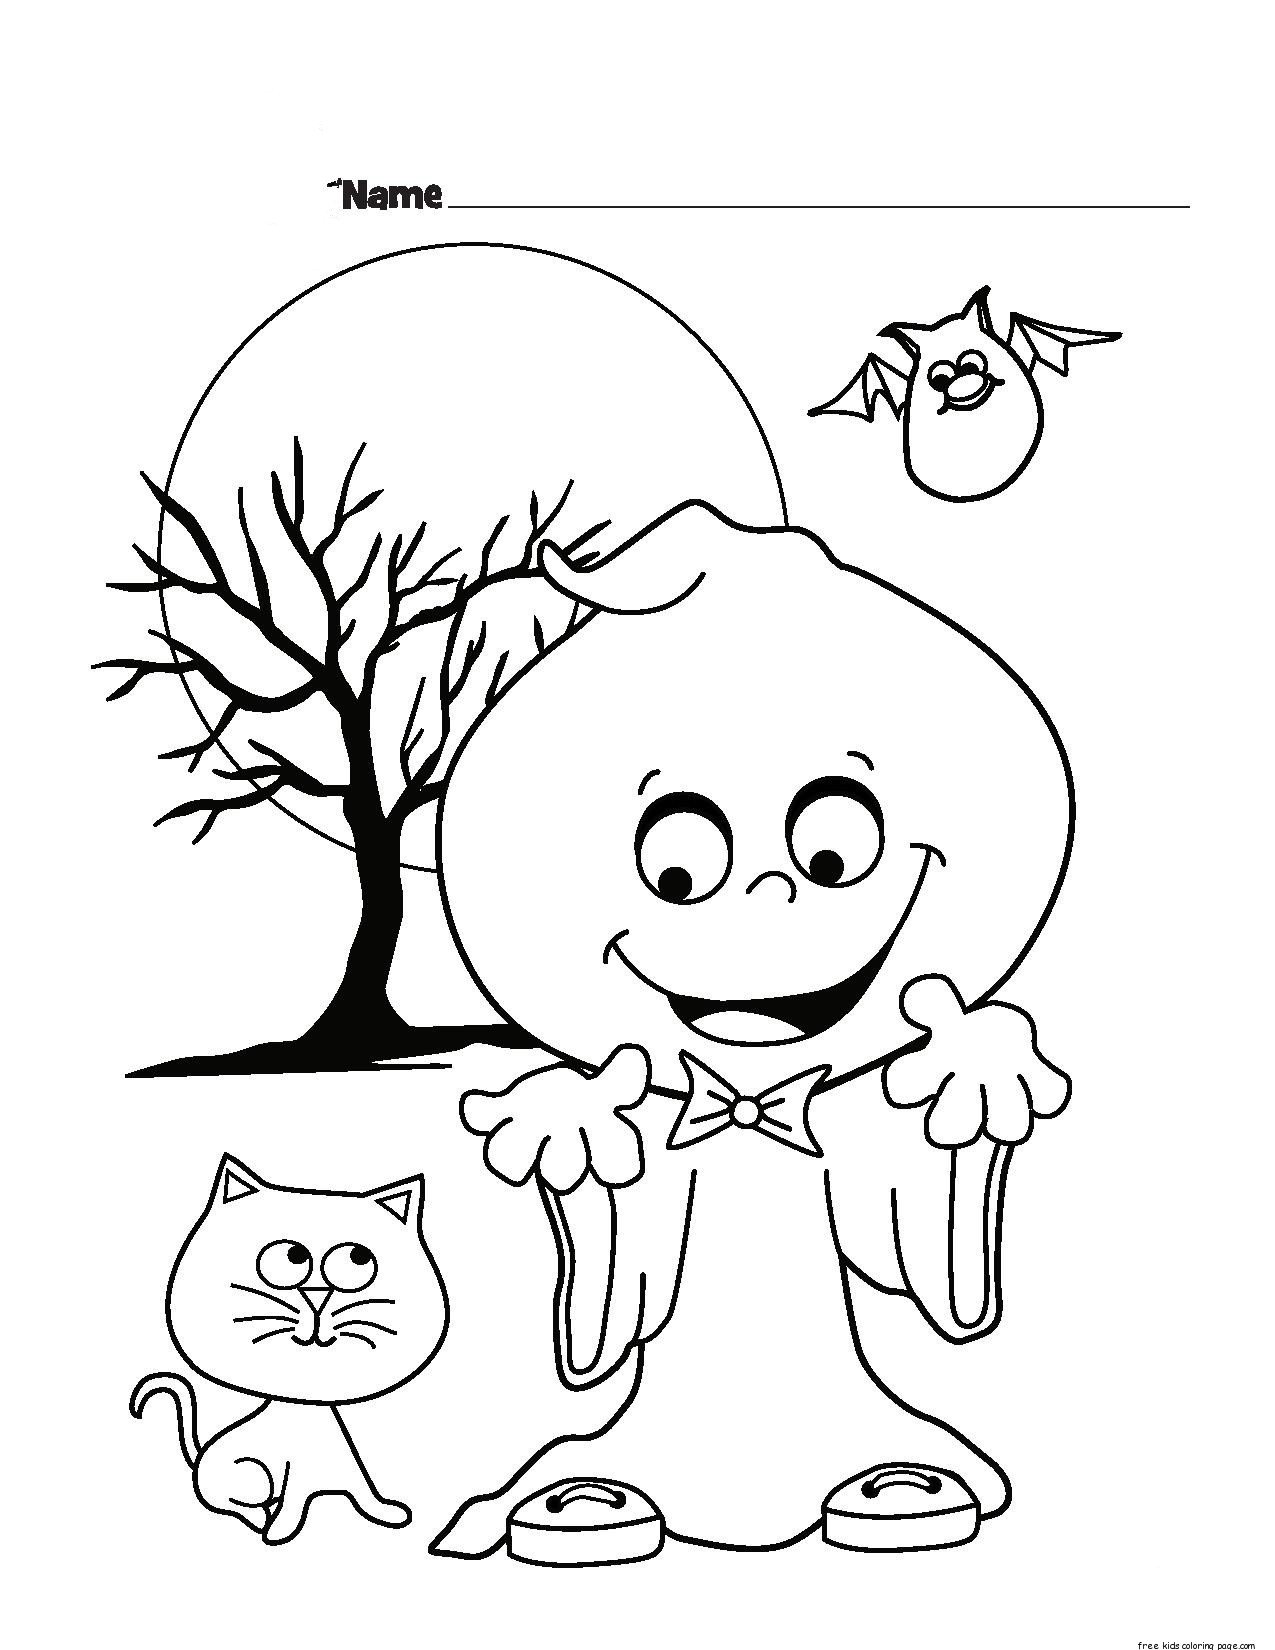 printable halloween coloring pages halloween ghost printable coloring pages for kidsfree pages halloween coloring printable